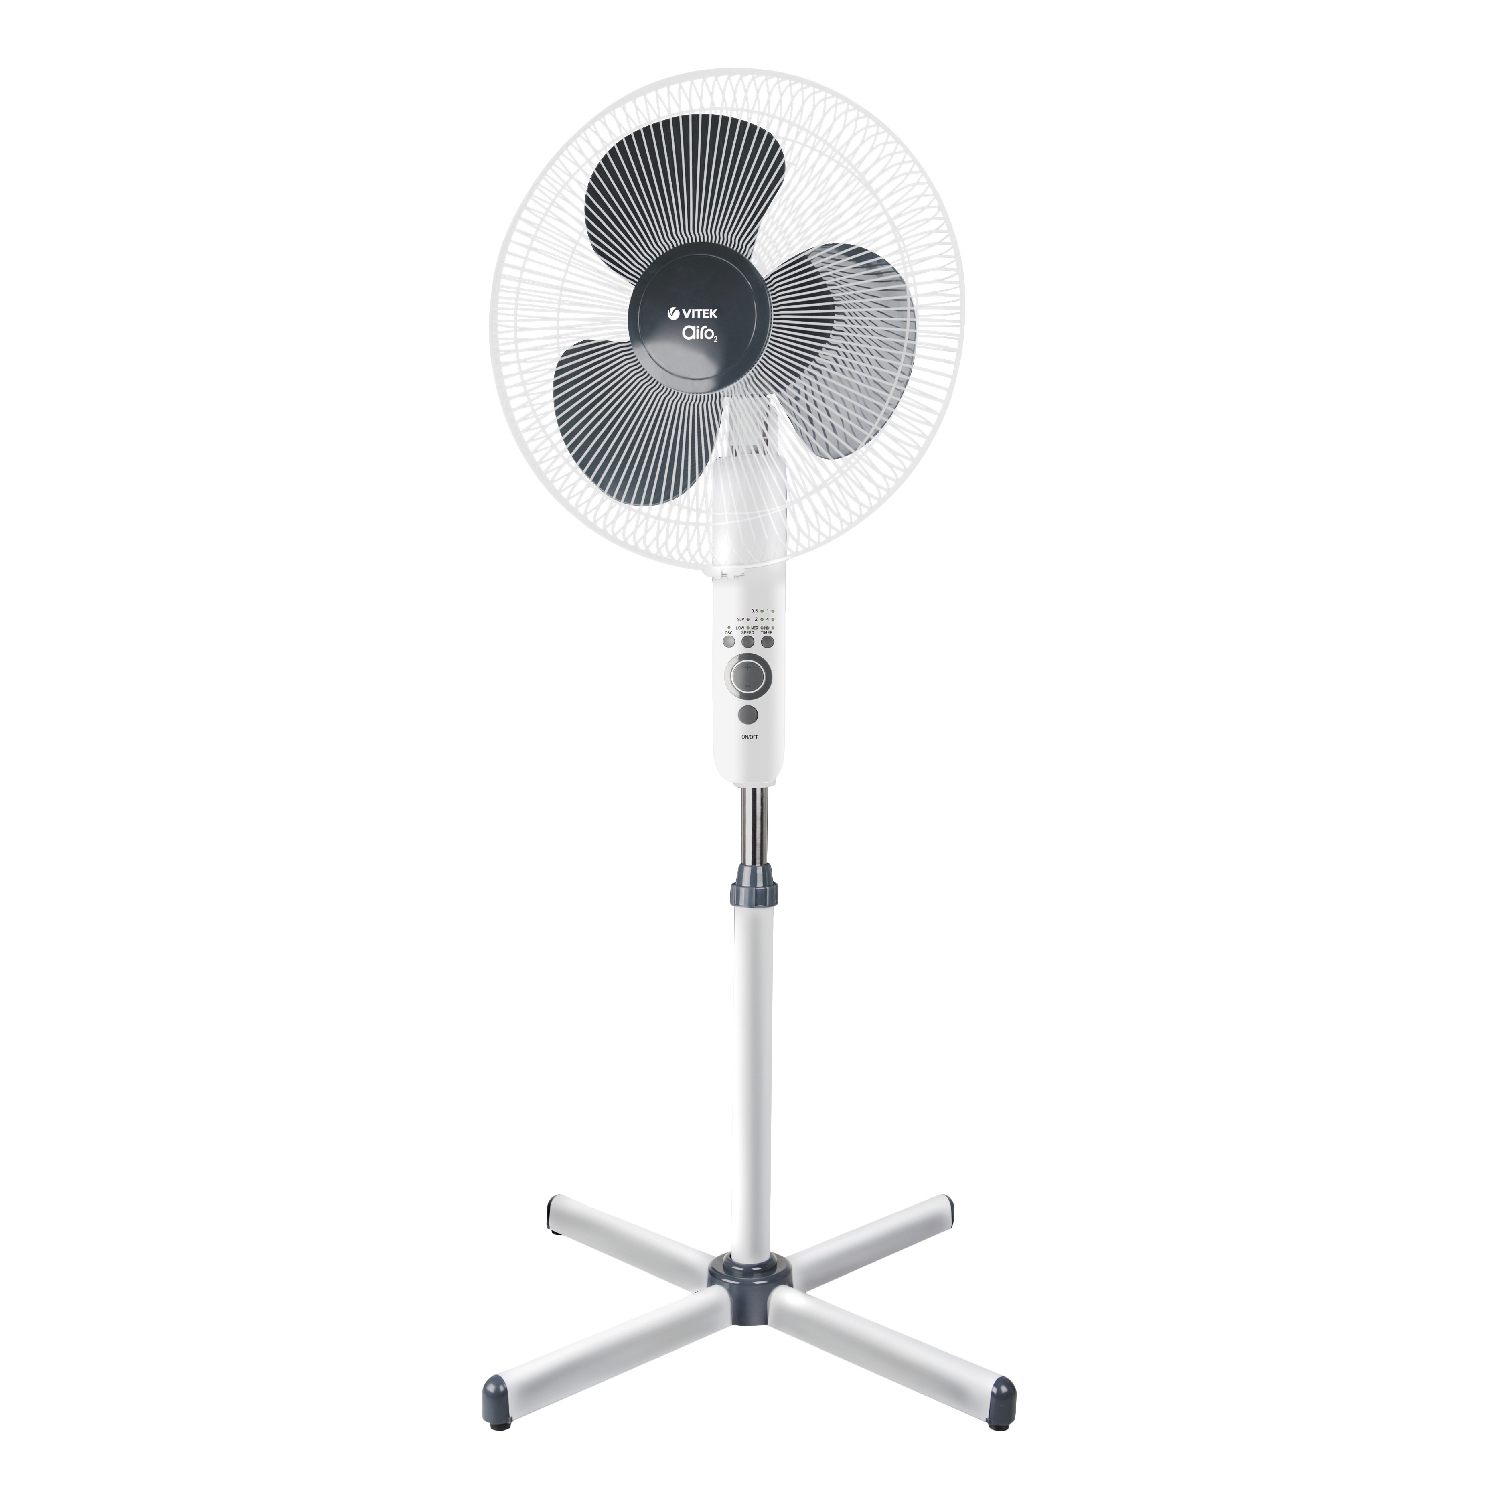 Household fan Vitek VT-1949 W (Power 50 W, outdoor, 3 speeds, remote control, turn mode, timer up to 7.5 h, height adjustment)